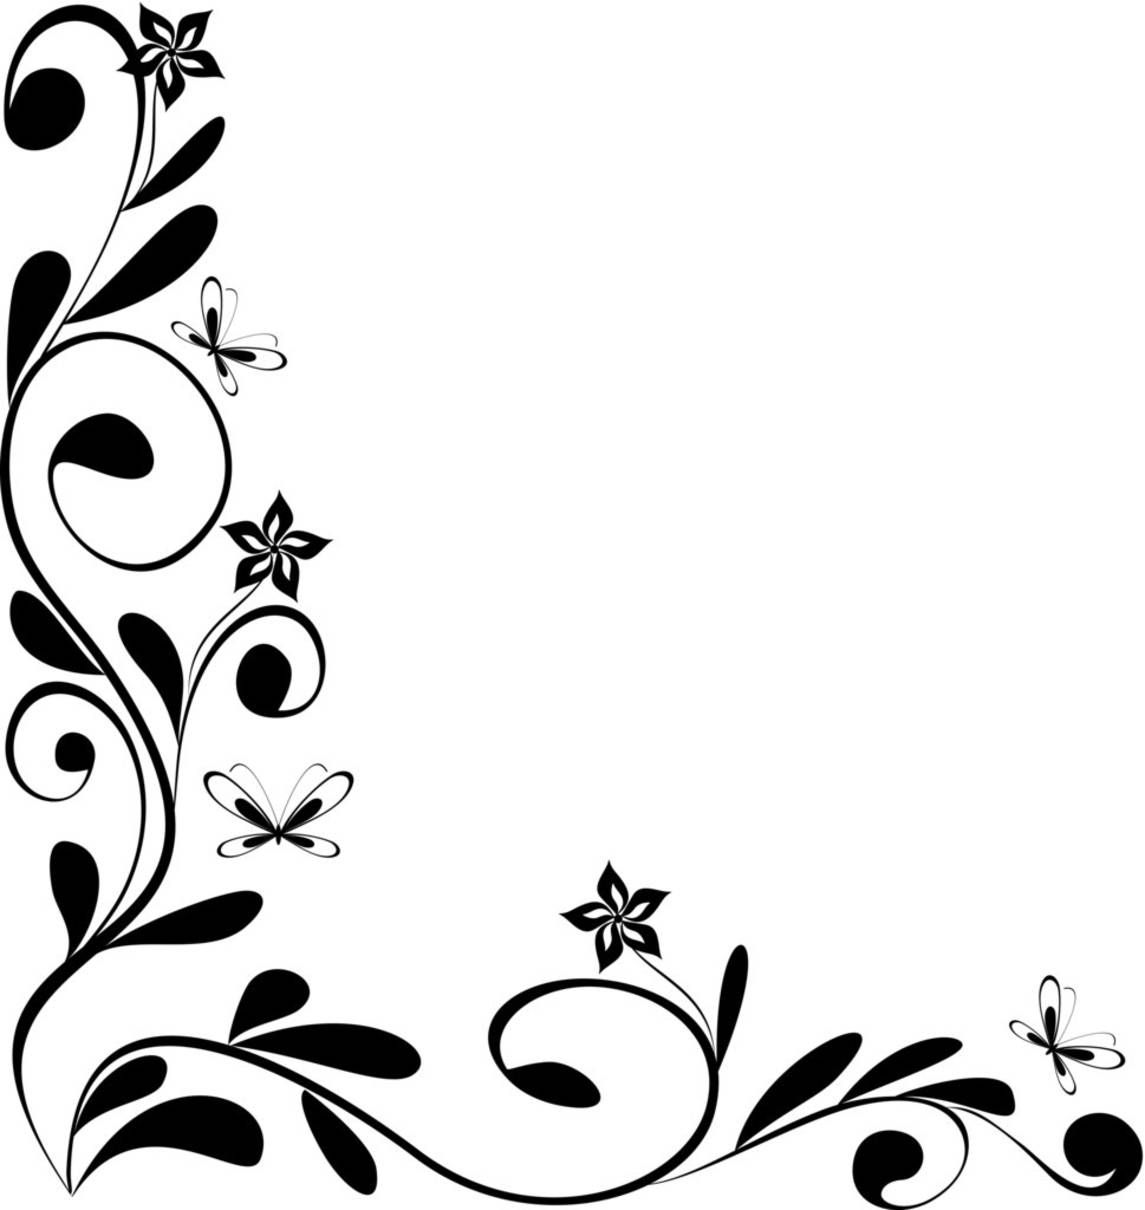 Flower Border Clip Art Flower Club Pinterest Corner Border